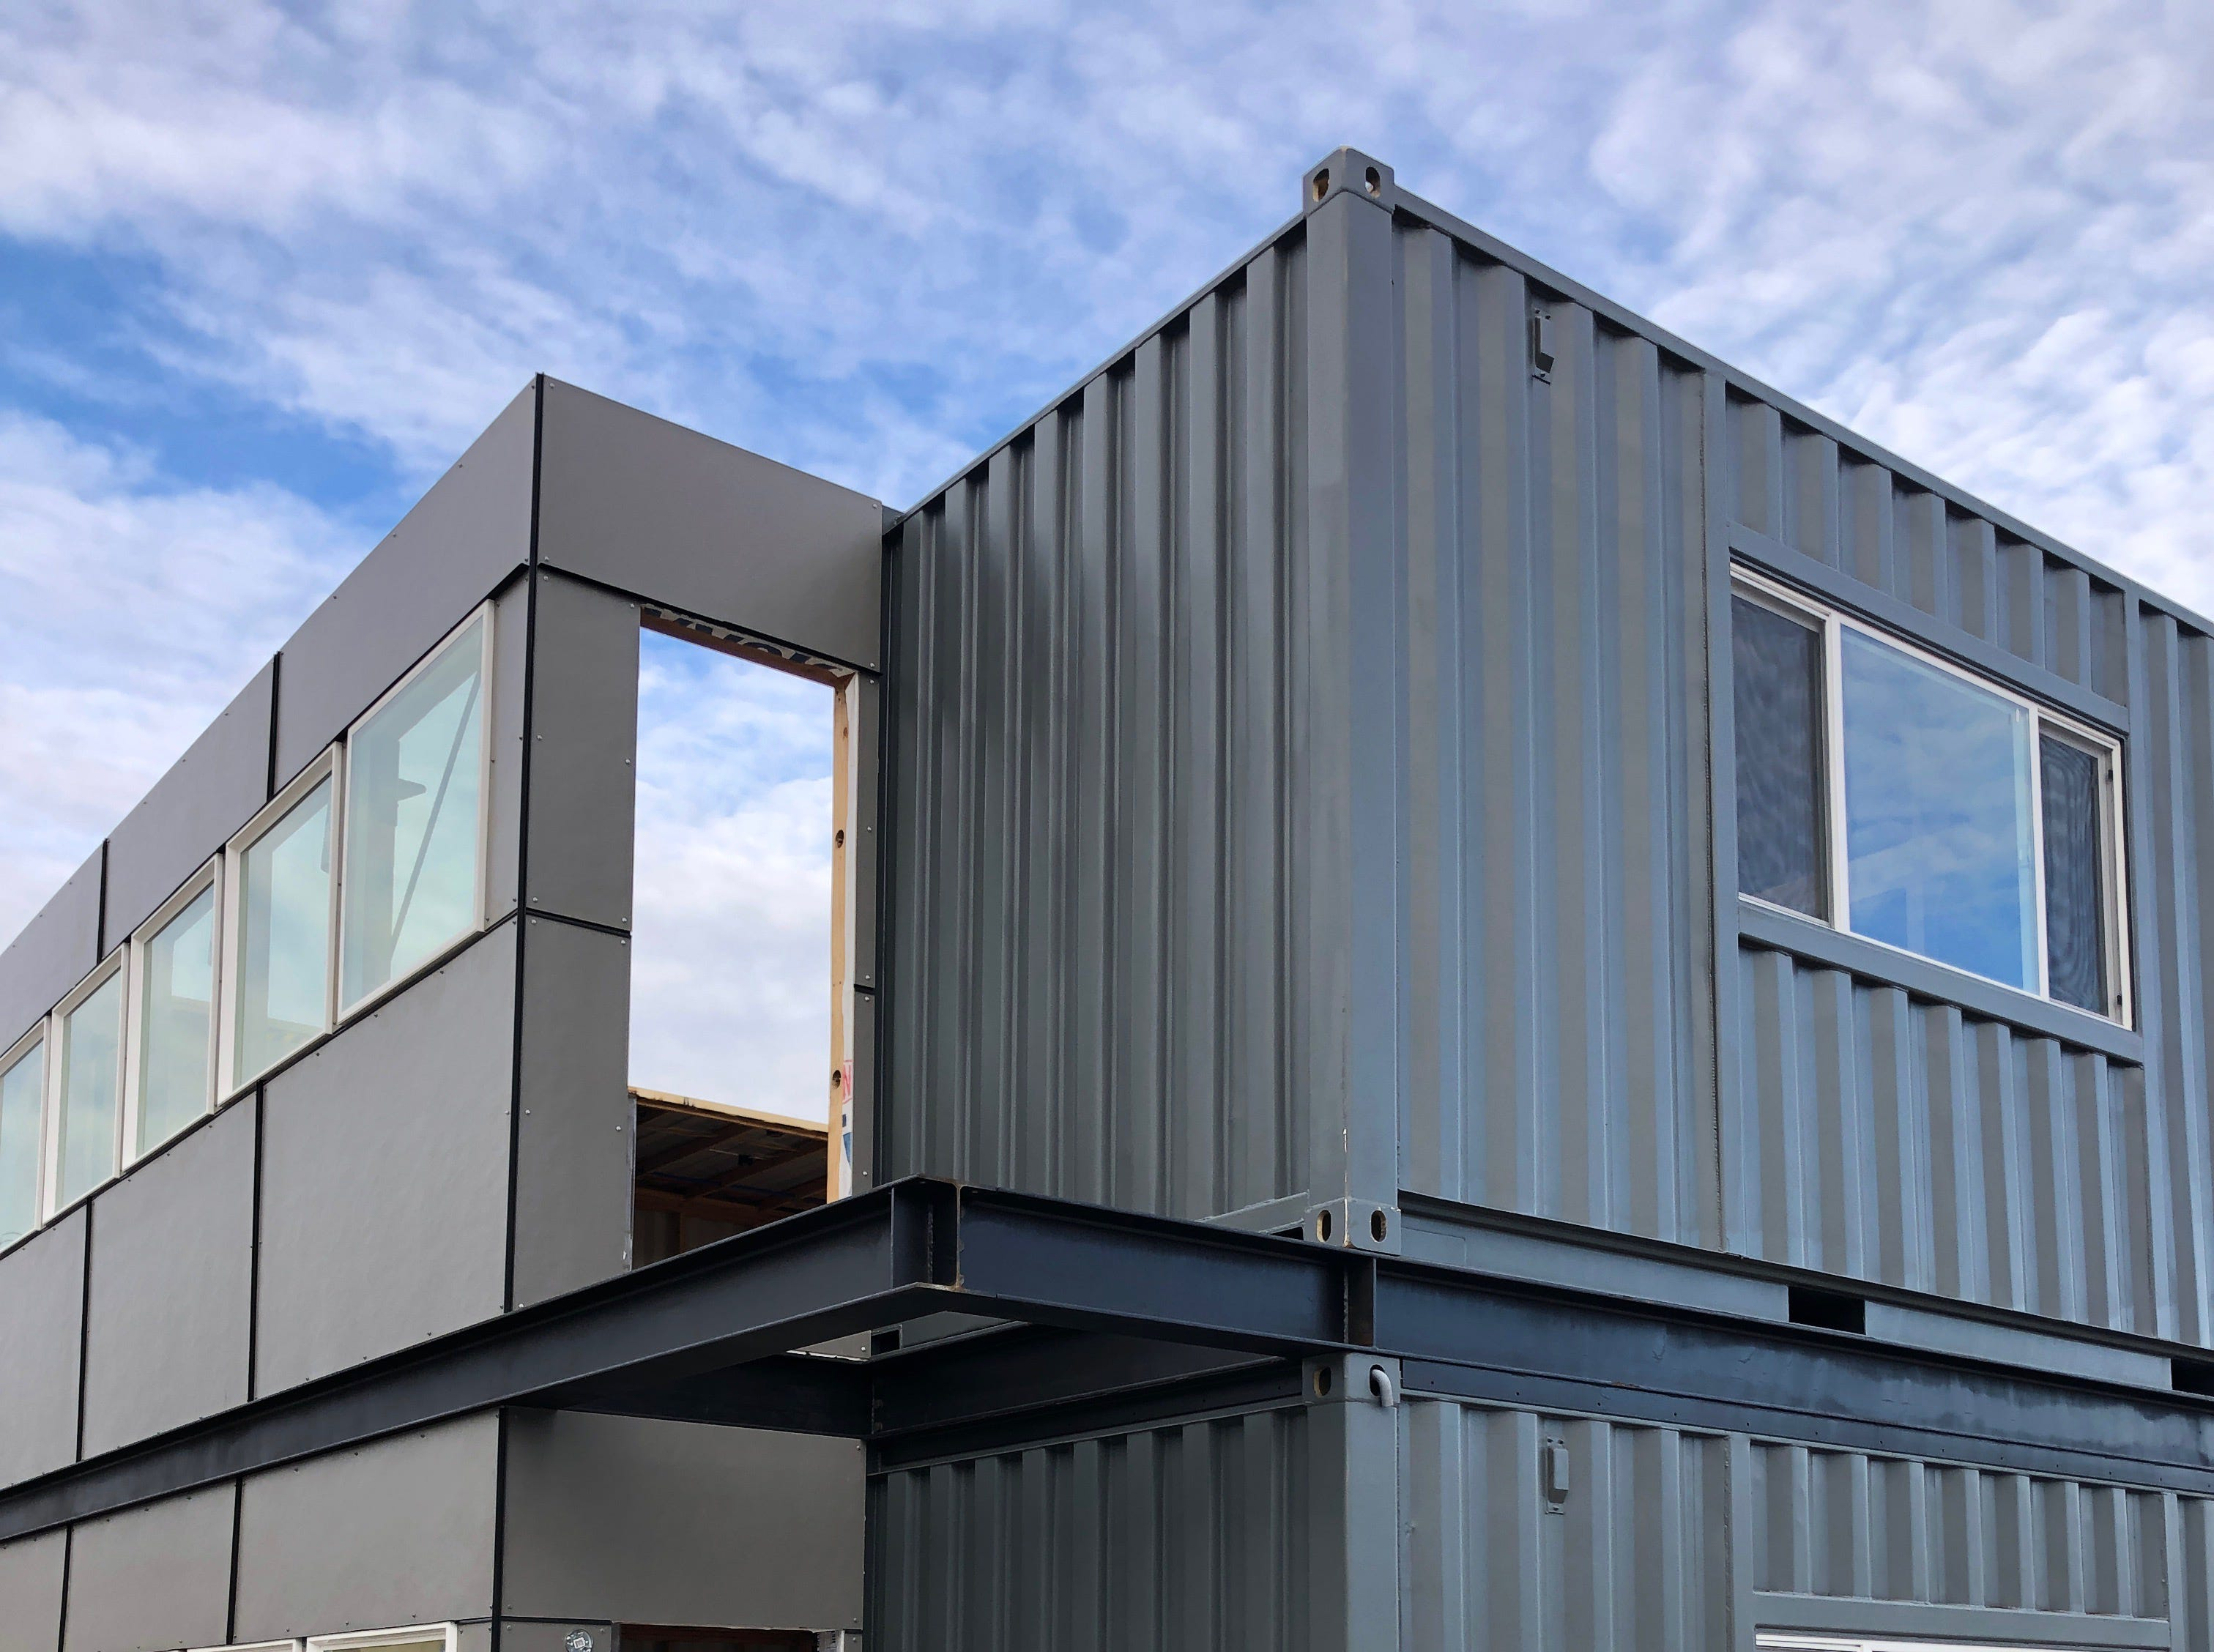 An early-stage photo of Marmot Properties' Midtown storage container-based apartment at the Twisted Metal site in Reno.